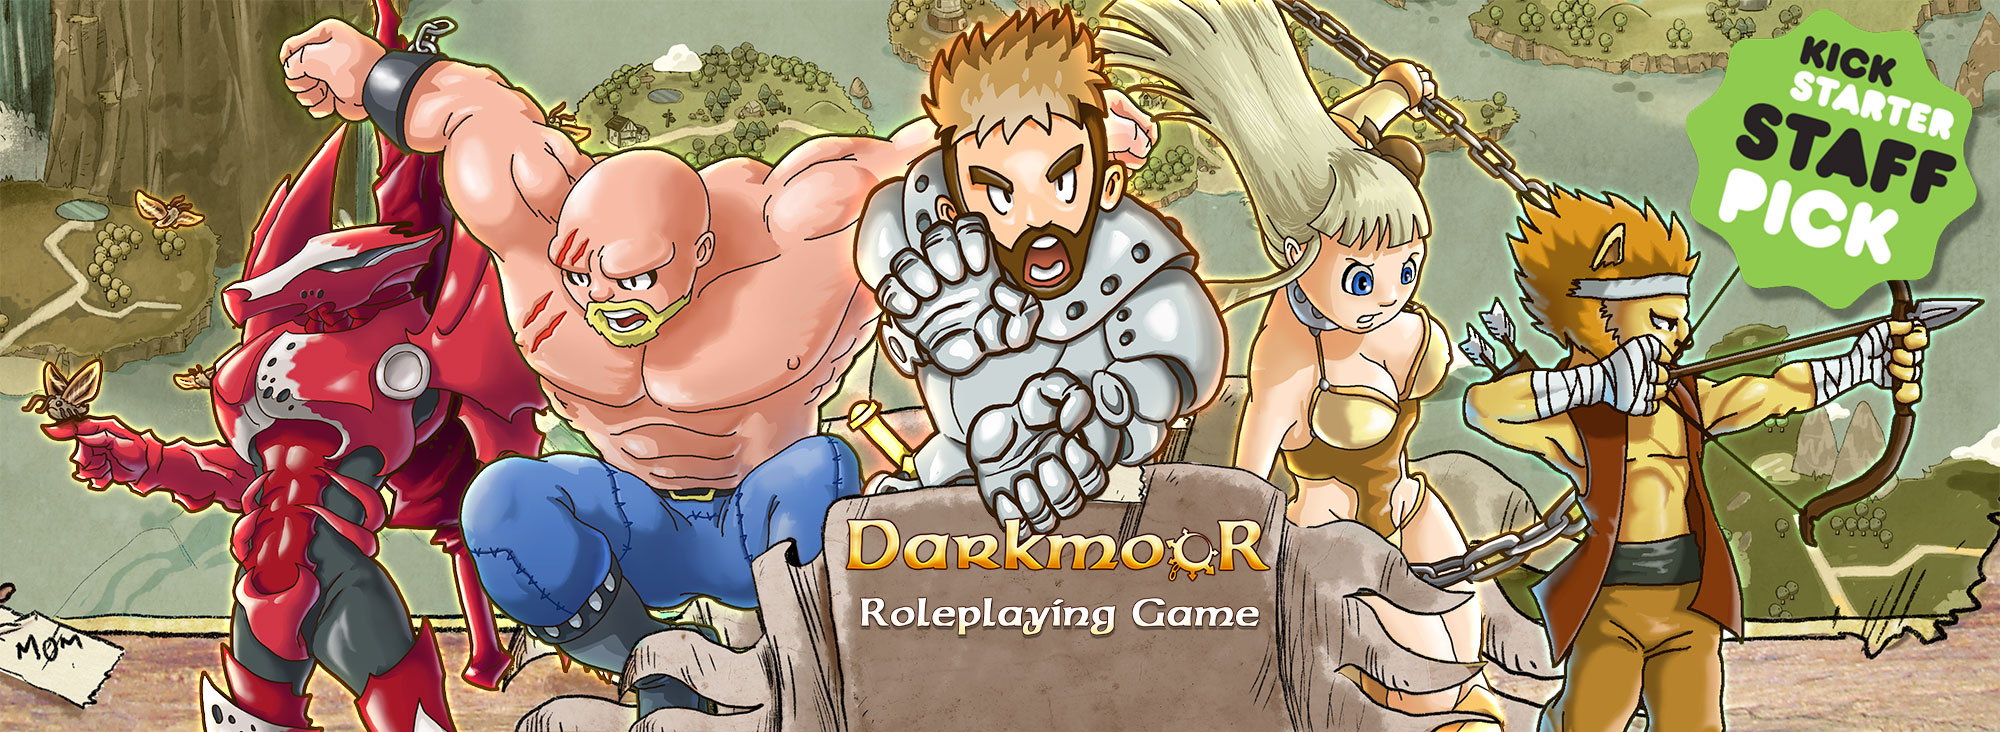 Darkmoor_RPG_Facebook_Cover_2